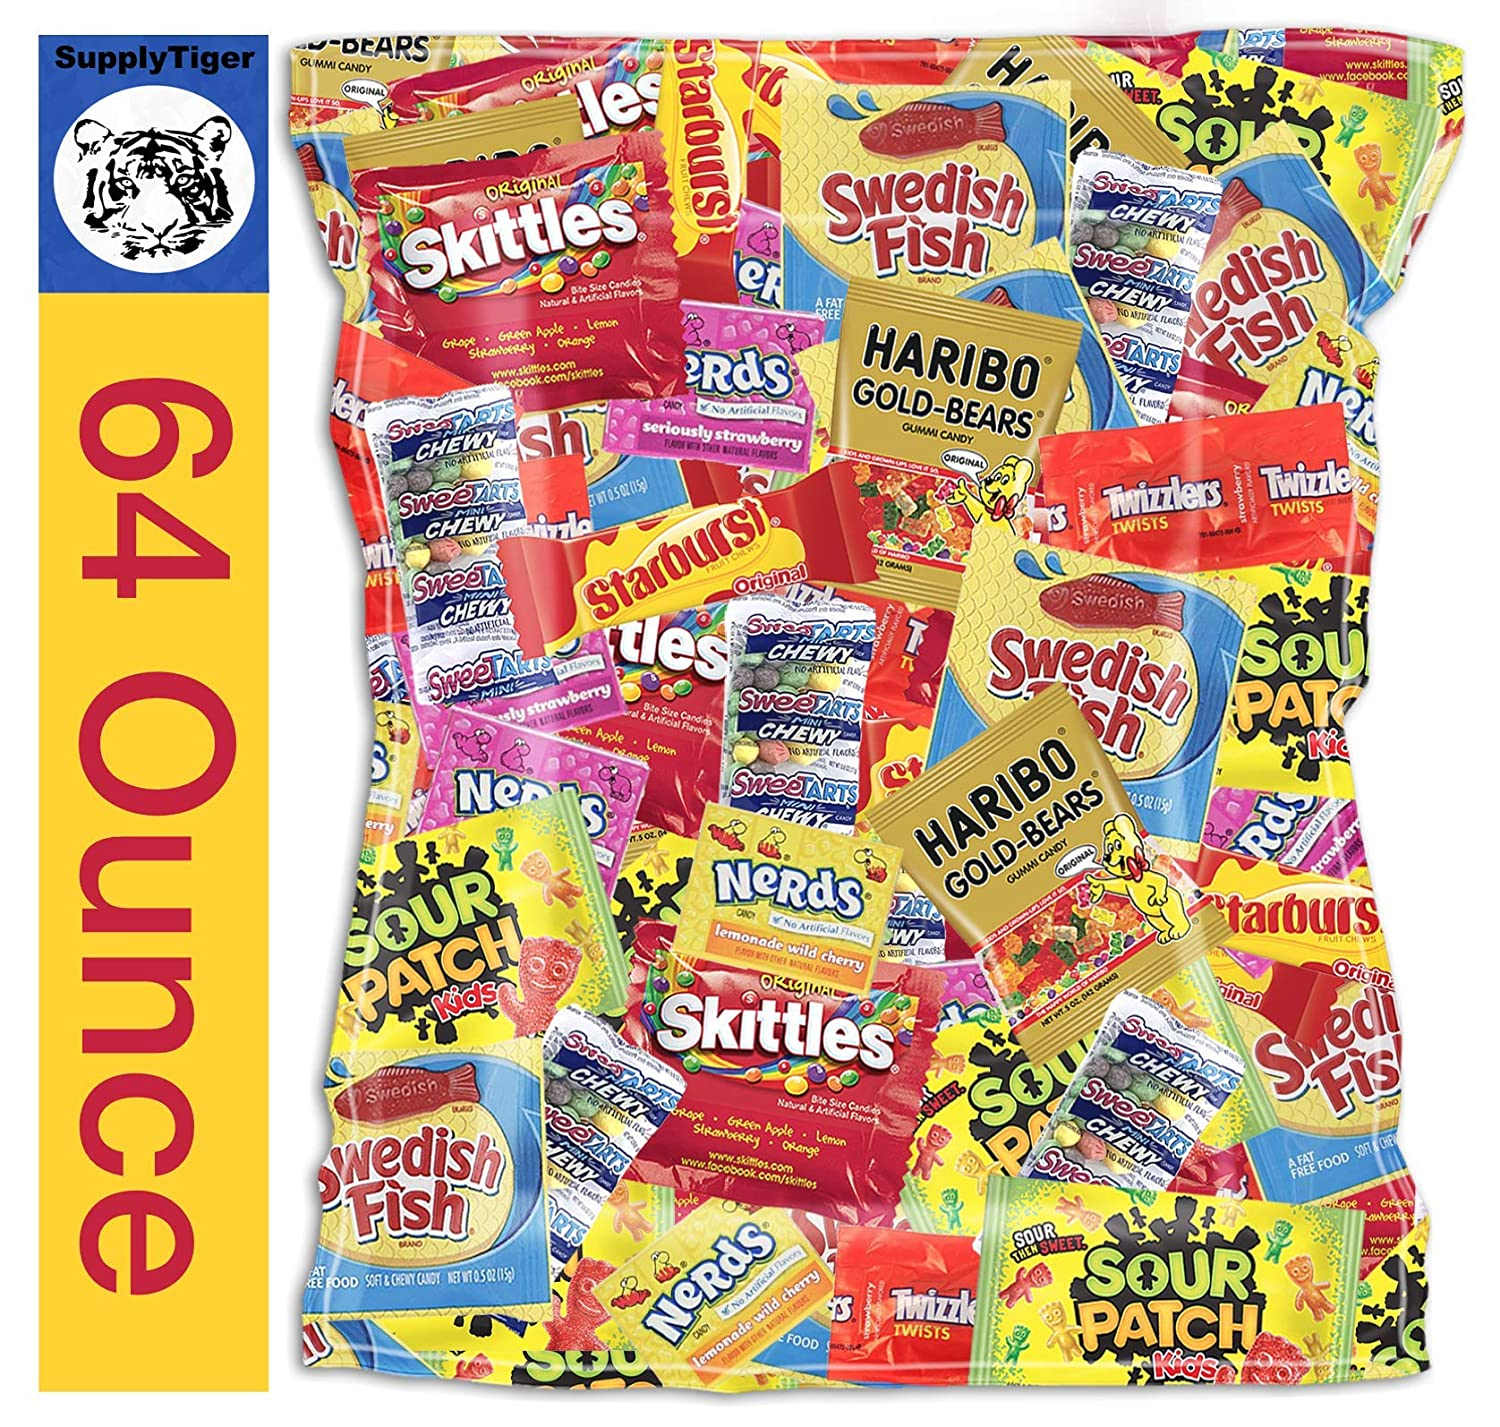 Kids Assorted Candy 64oz Pack Sour Patch Skittles Twizzlers Starburst Swedish Fish Haribo Bears Party Bags, Gifts, and Office Snacks